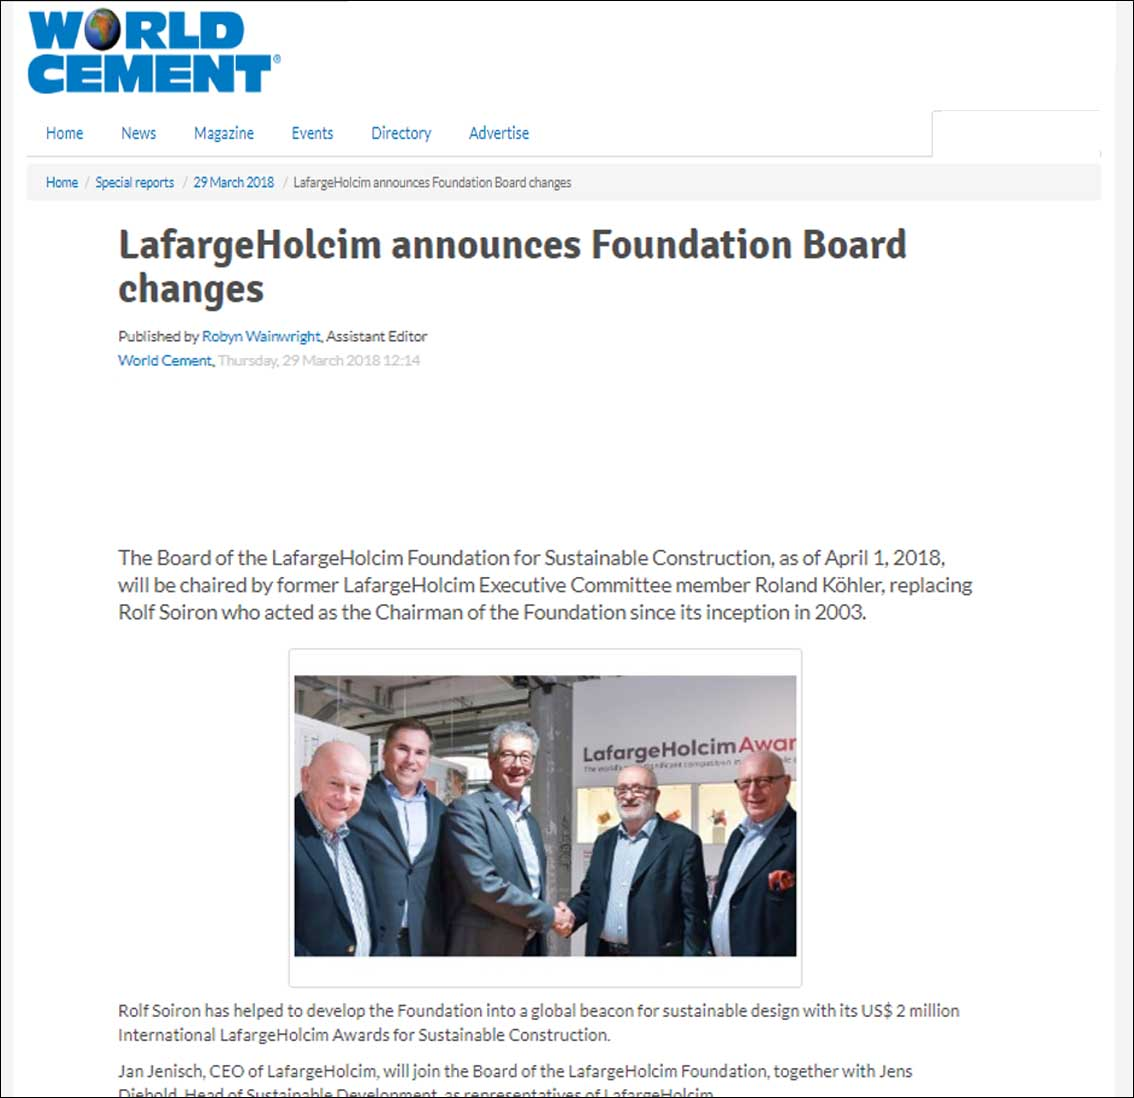 World cement, Lafarge Holcim announces Foundation Board changes - March 2018